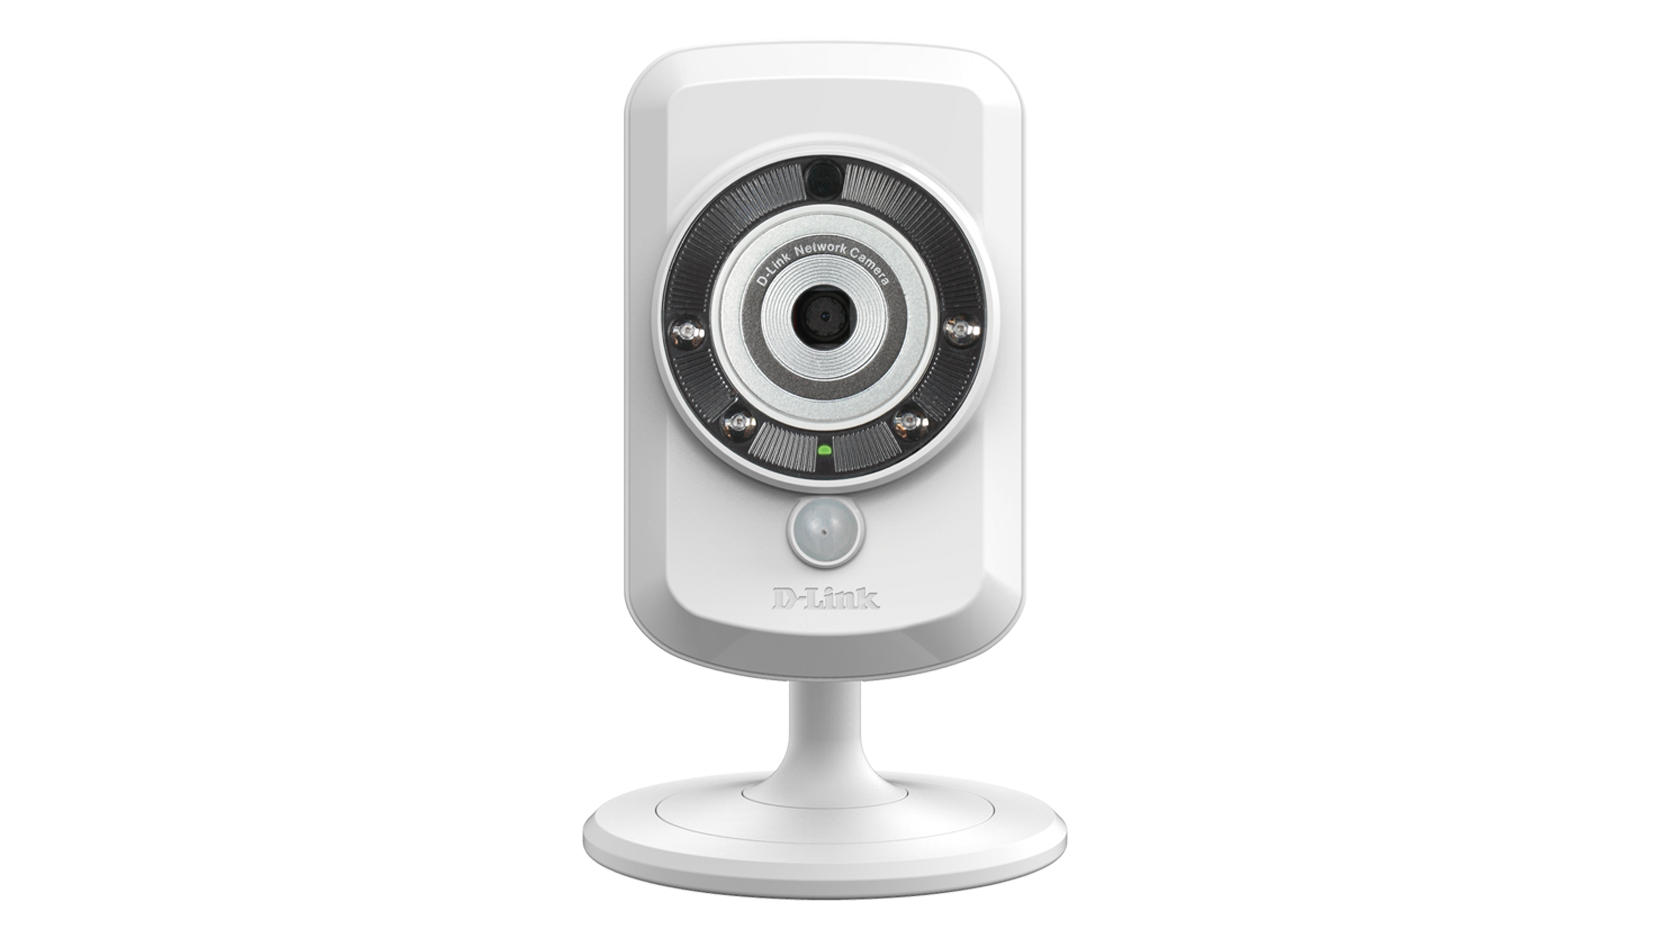 get diy security for your home with the record playback wi fi camera d link. Black Bedroom Furniture Sets. Home Design Ideas